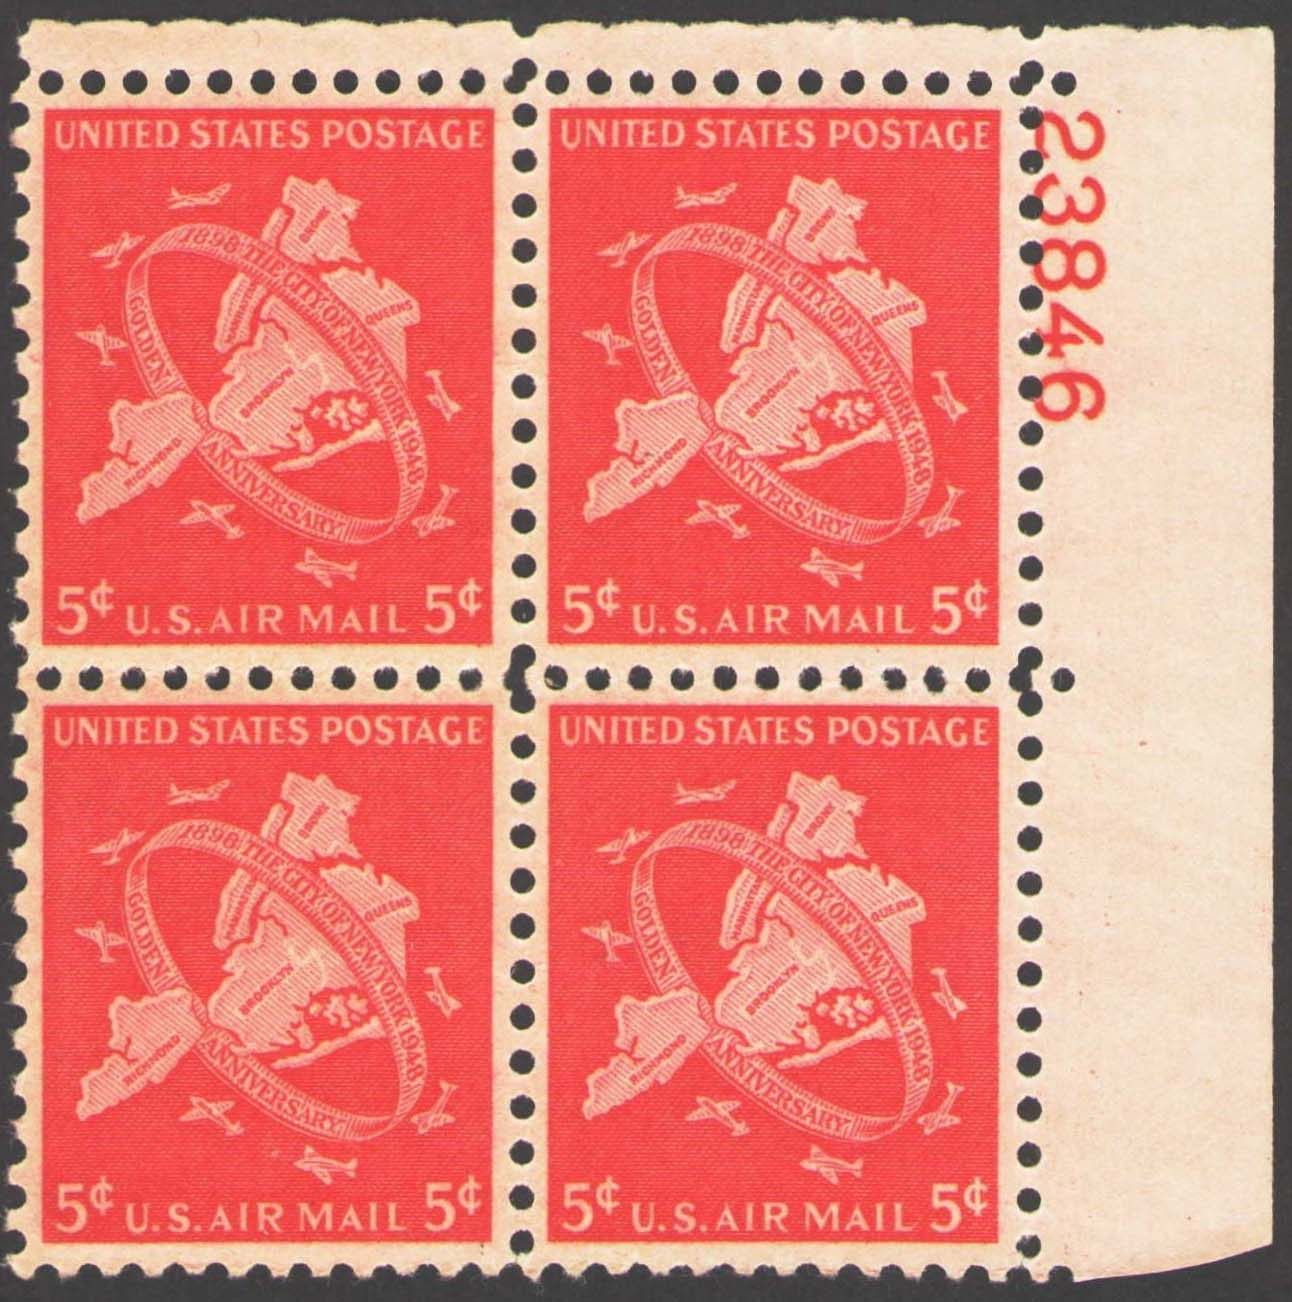 Scott C-038 Plate Block (5 cents)